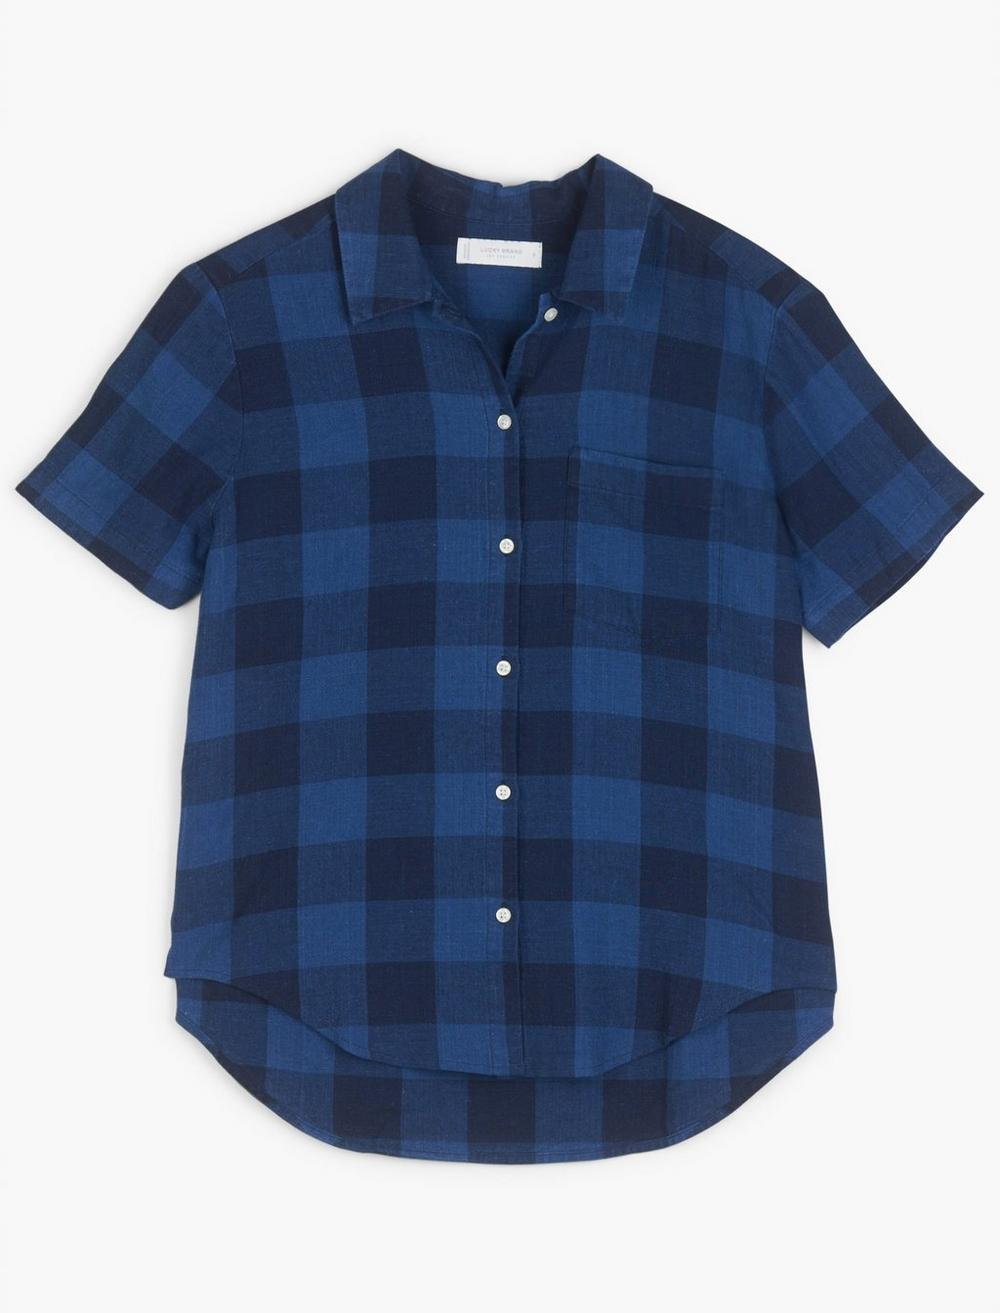 TIE FRONT SHIRT, image 1